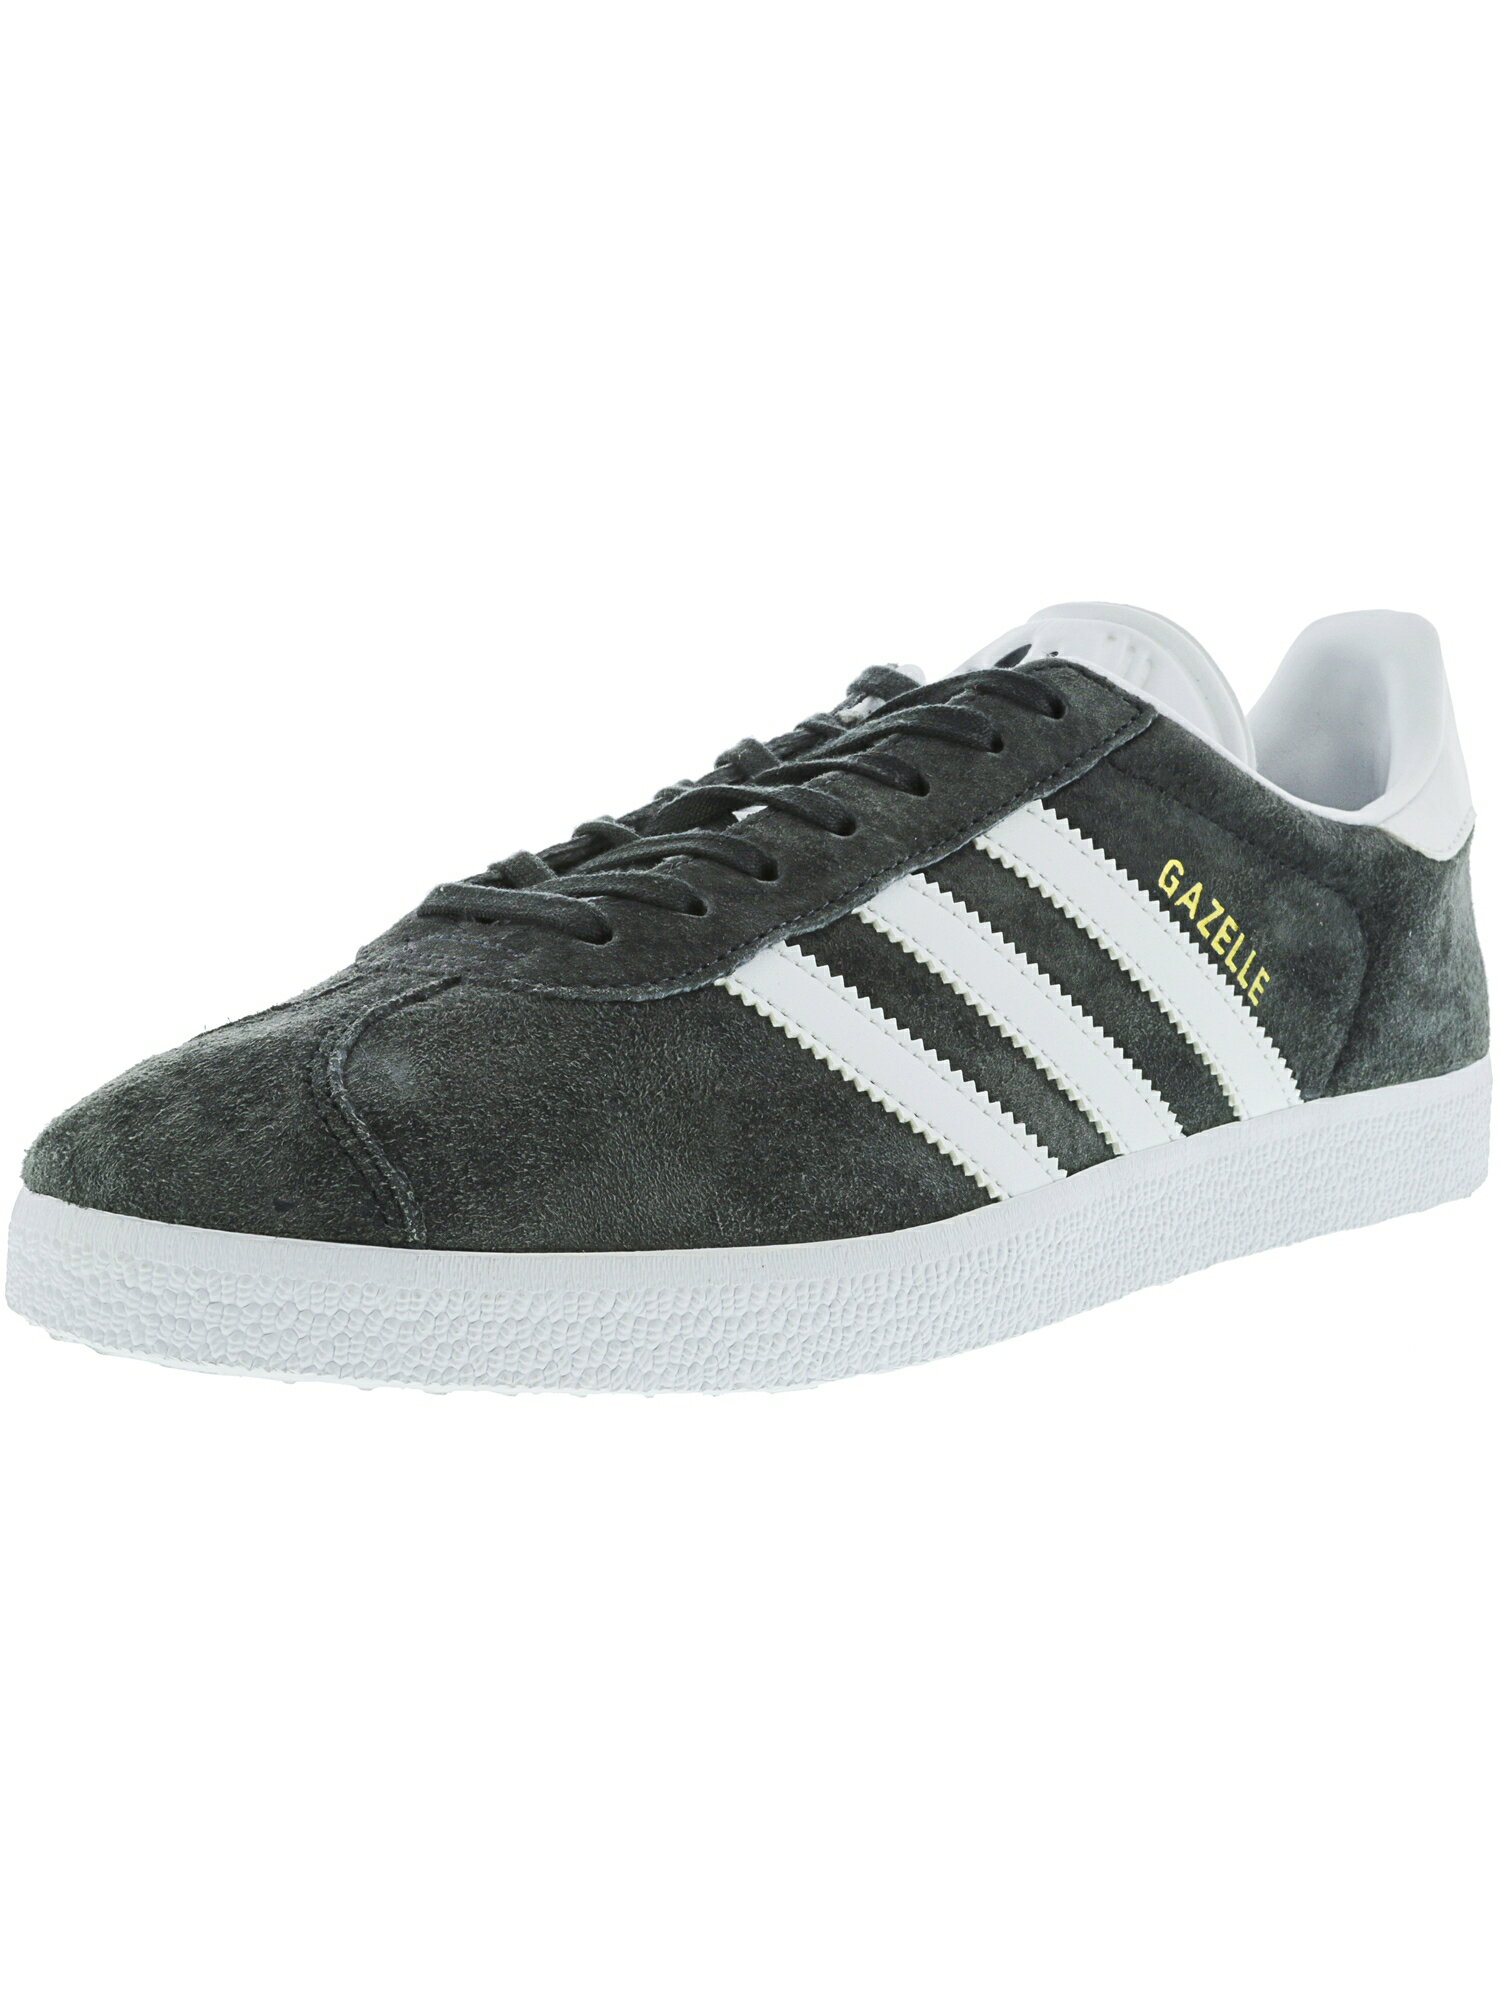 f2bdee53f766 AreaTrend  Adidas Men s Gazelle Ankle-High Leather Fashion Sneaker ...